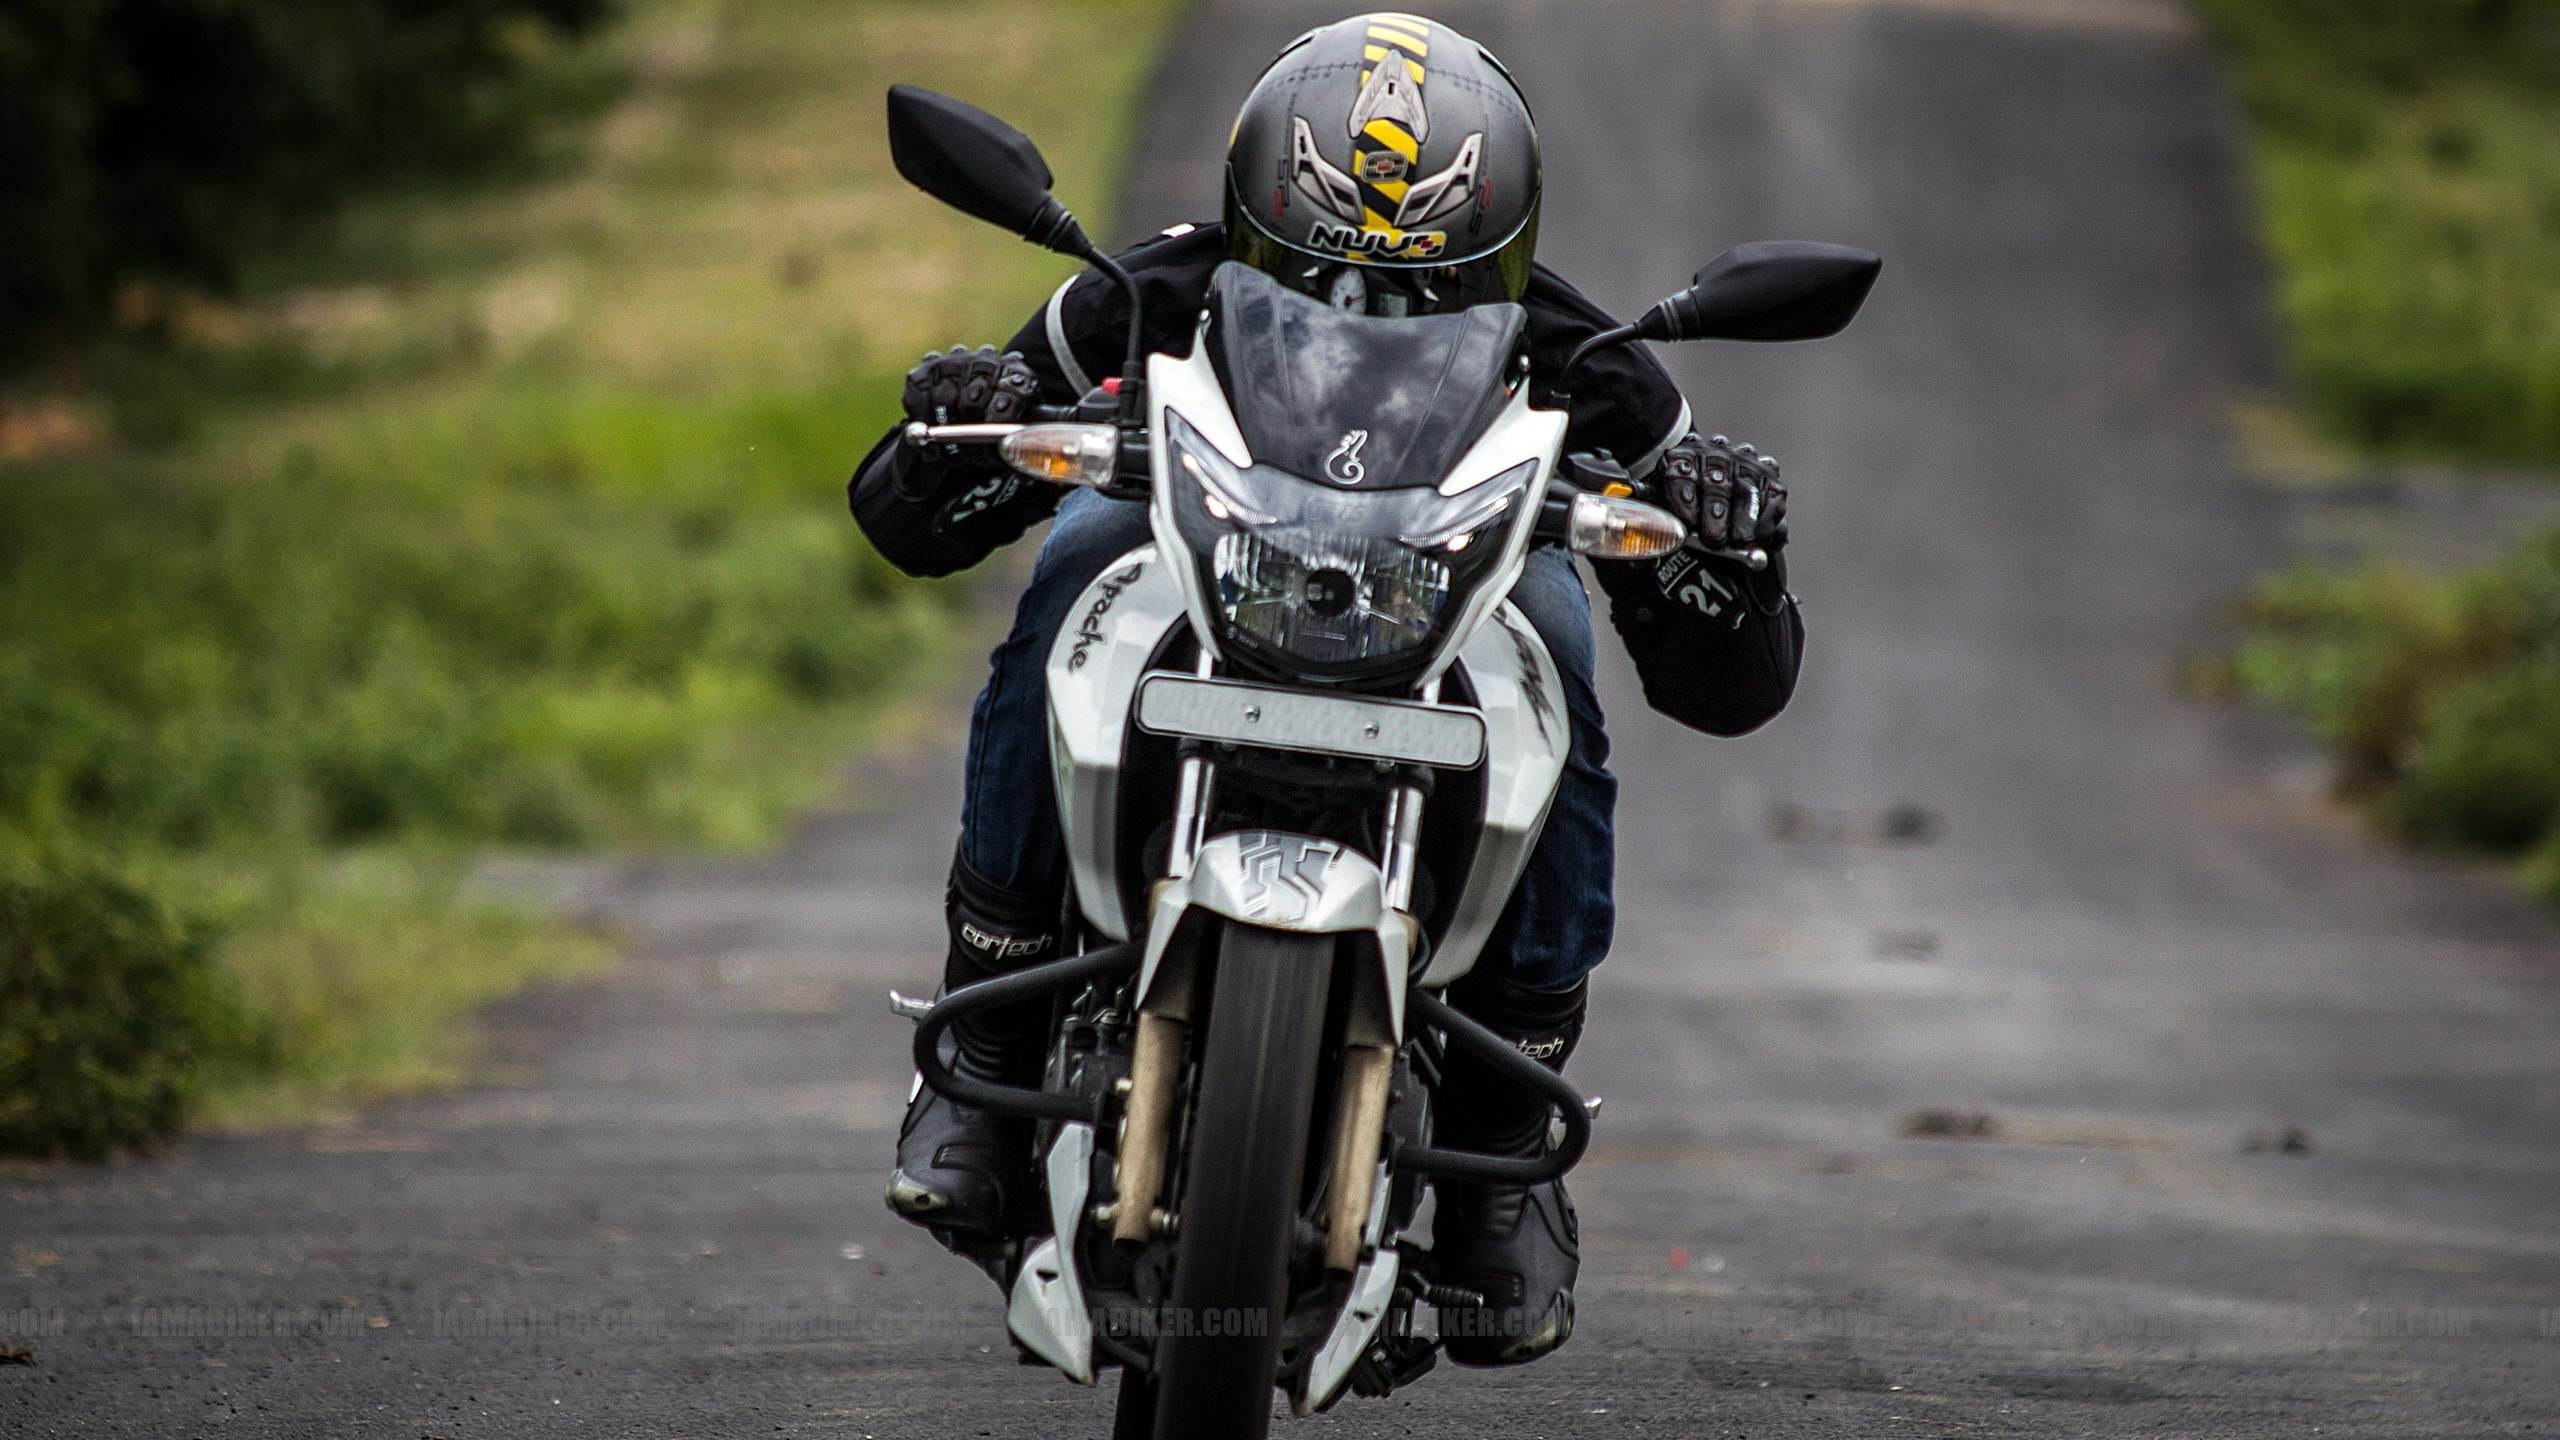 Tvs Apache Rtr 180 2019 Model Wallpapers Wallpaper Cave